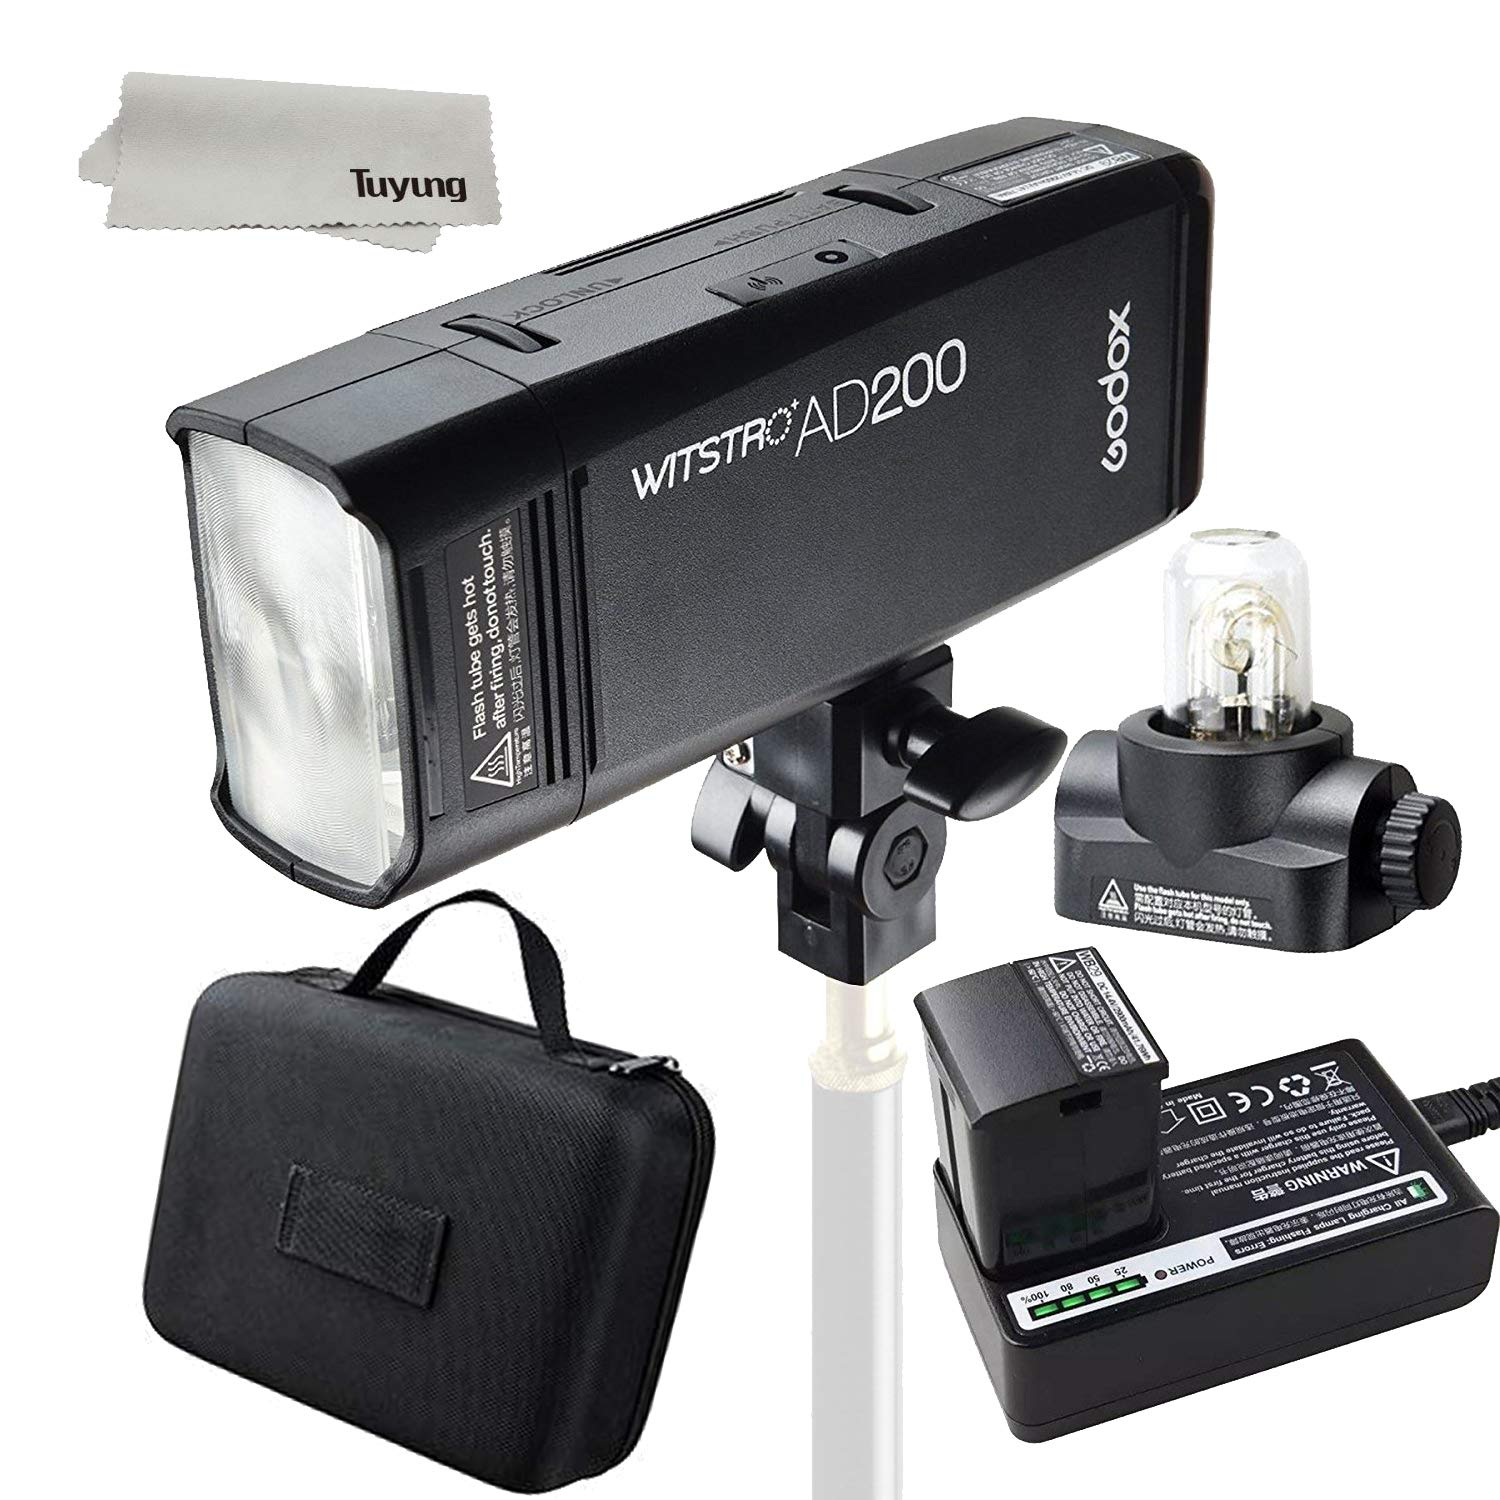 GODOX AD200 has 200Ws GN 60 High Speed Sync Flash Strobe Built-in 2.4G Wireless X System to Achieve TTL 2900mAh Battery to Provide 500 Full Power Flashes Recycle in 0.01-2.1 Second by Godox